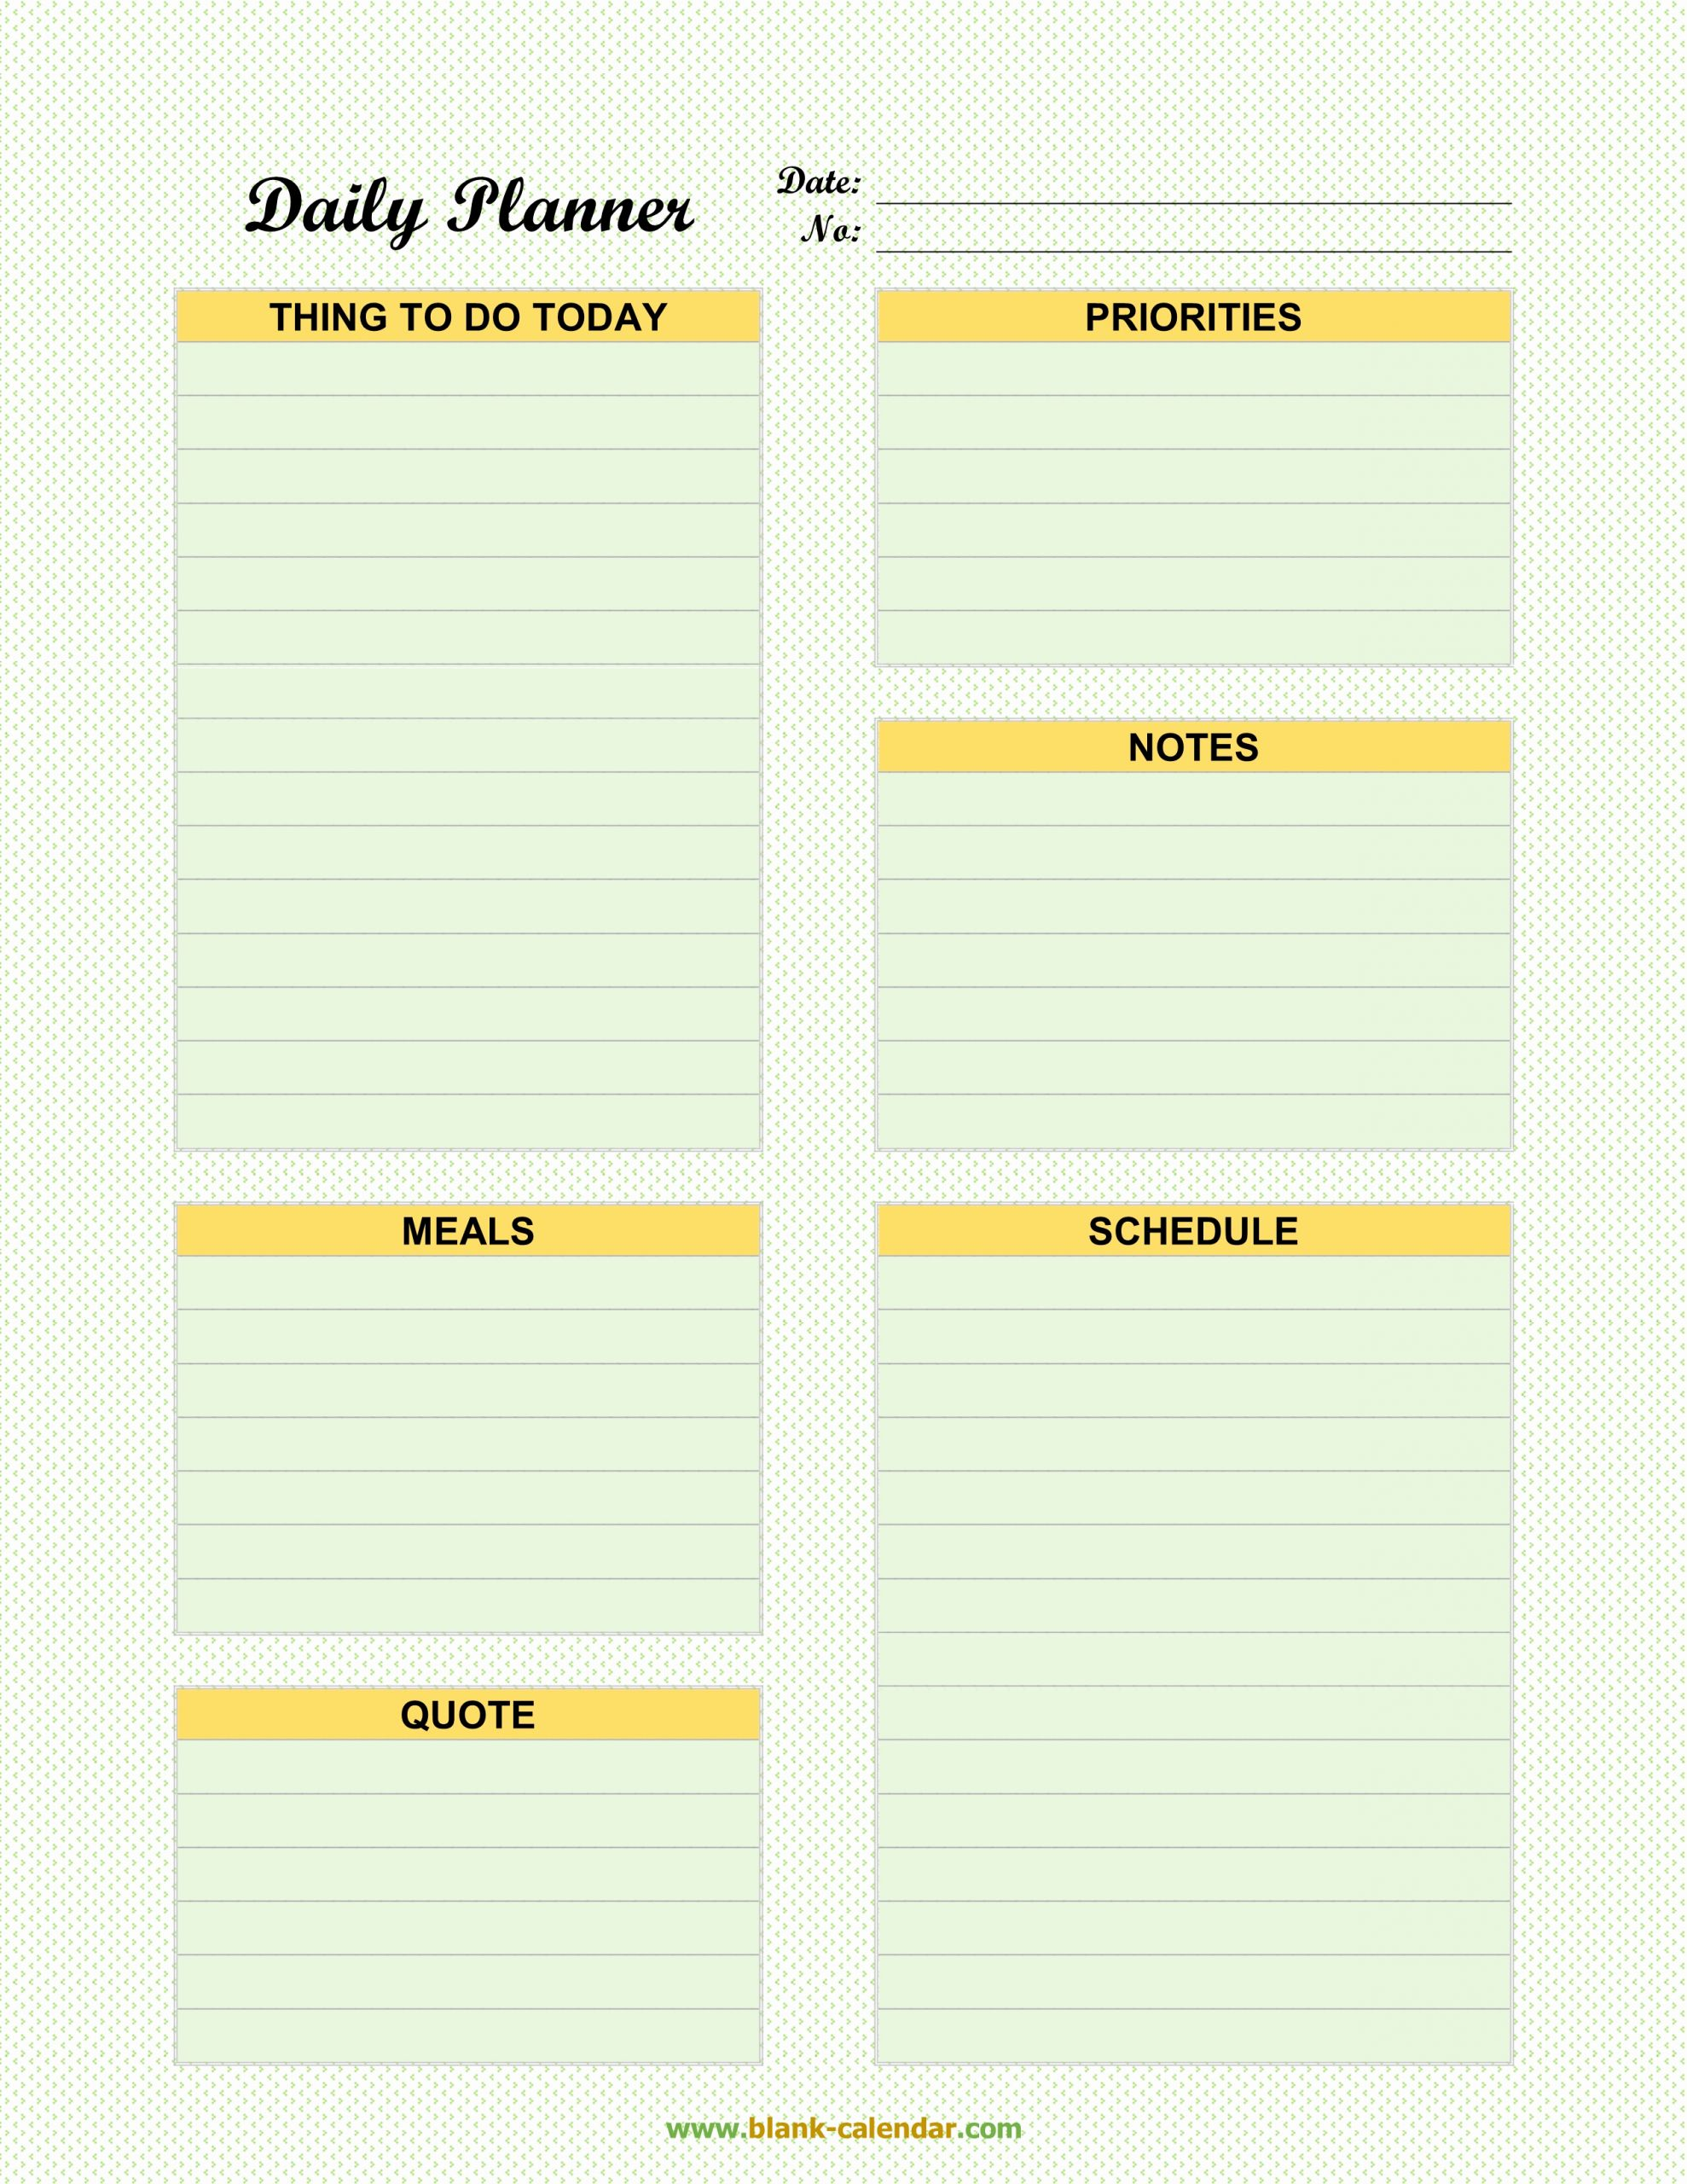 Daily Schedule Planner Template Awesome Daily Planner Templates Word Excel Pdf